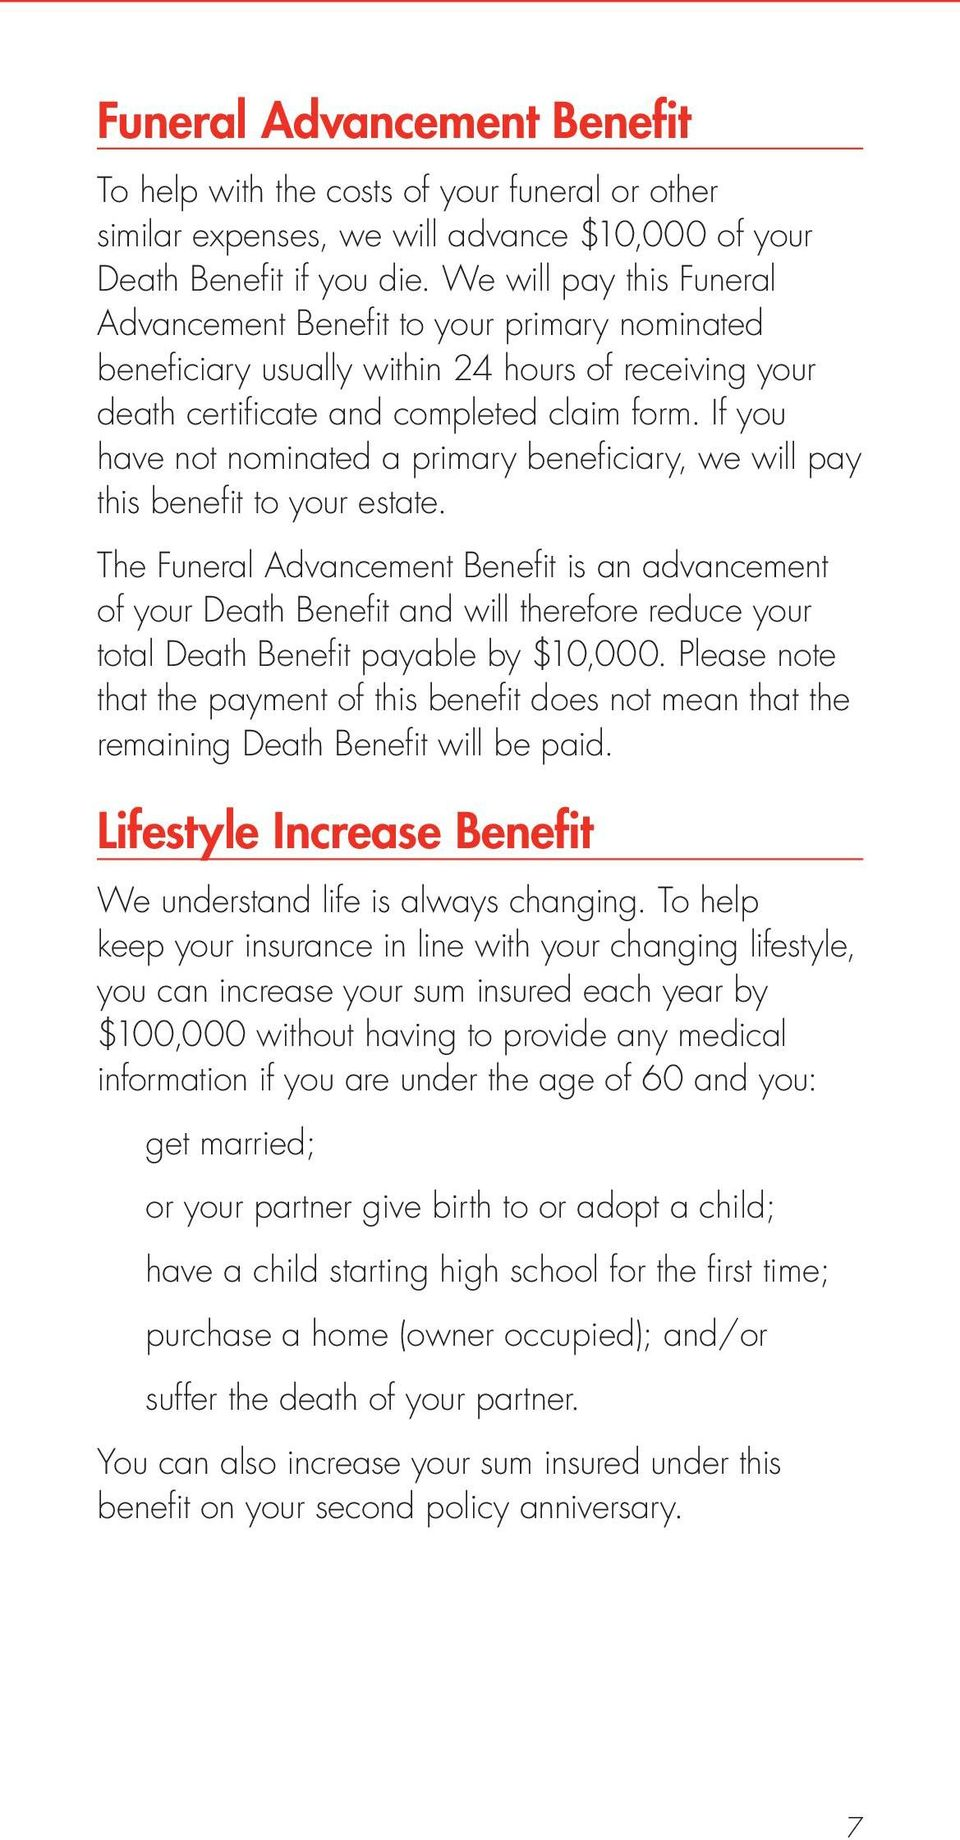 If you have not nominated a primary beneficiary, we will pay this benefit to your estate.